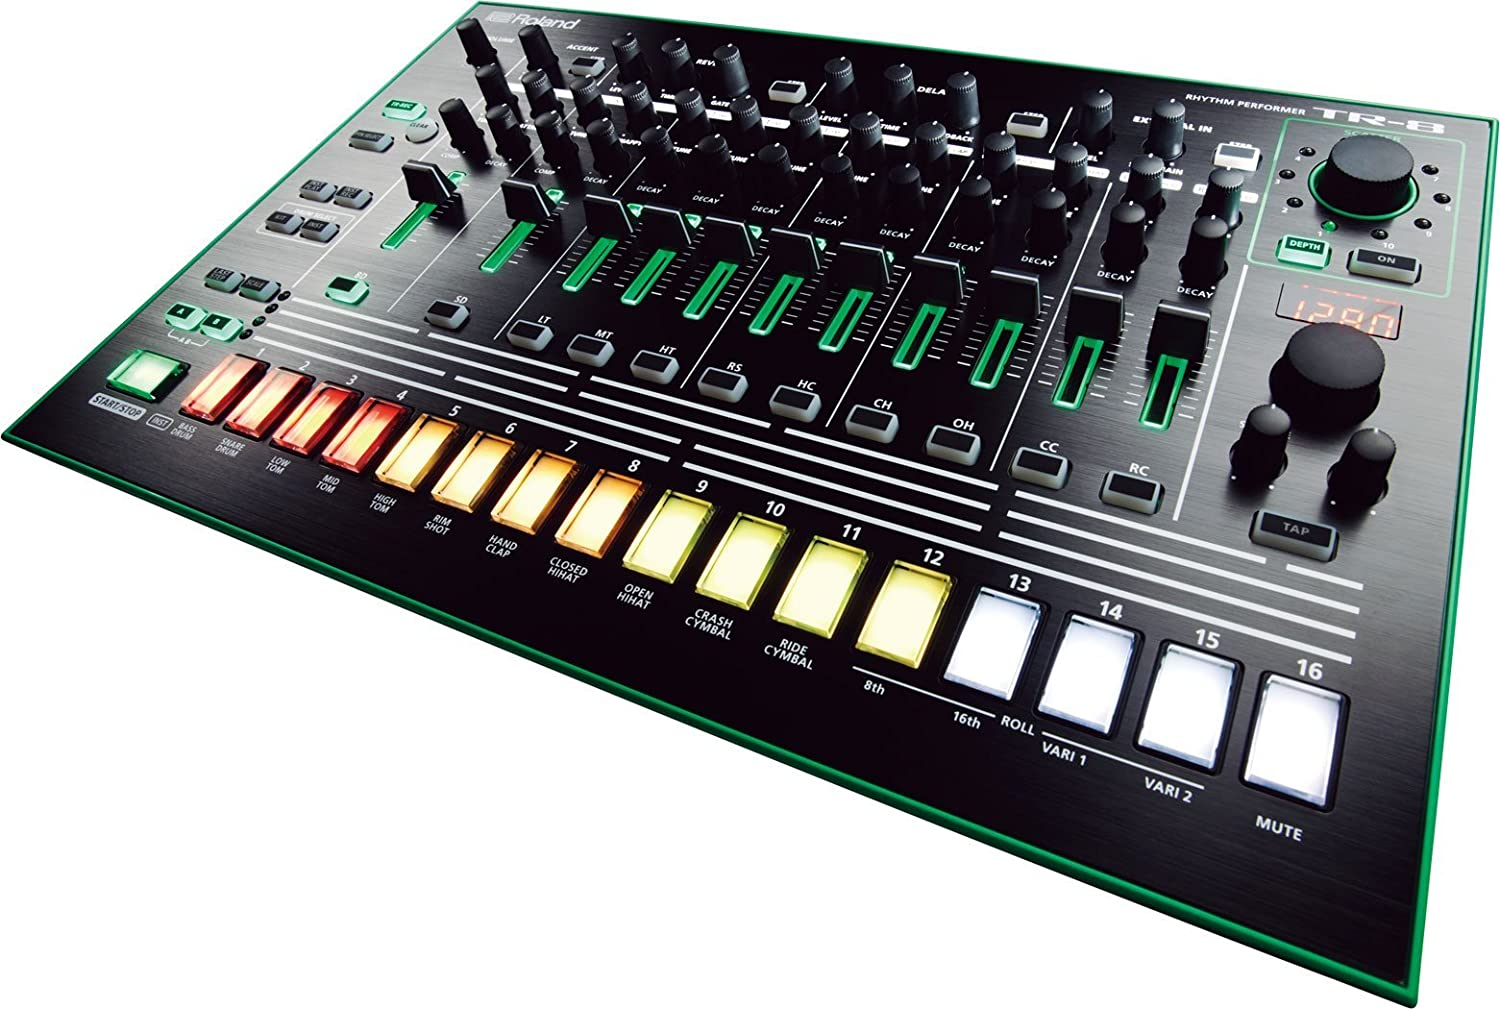 Amazon.com: Roland Aira TR-8 Rhythm Performer: Musical Instruments